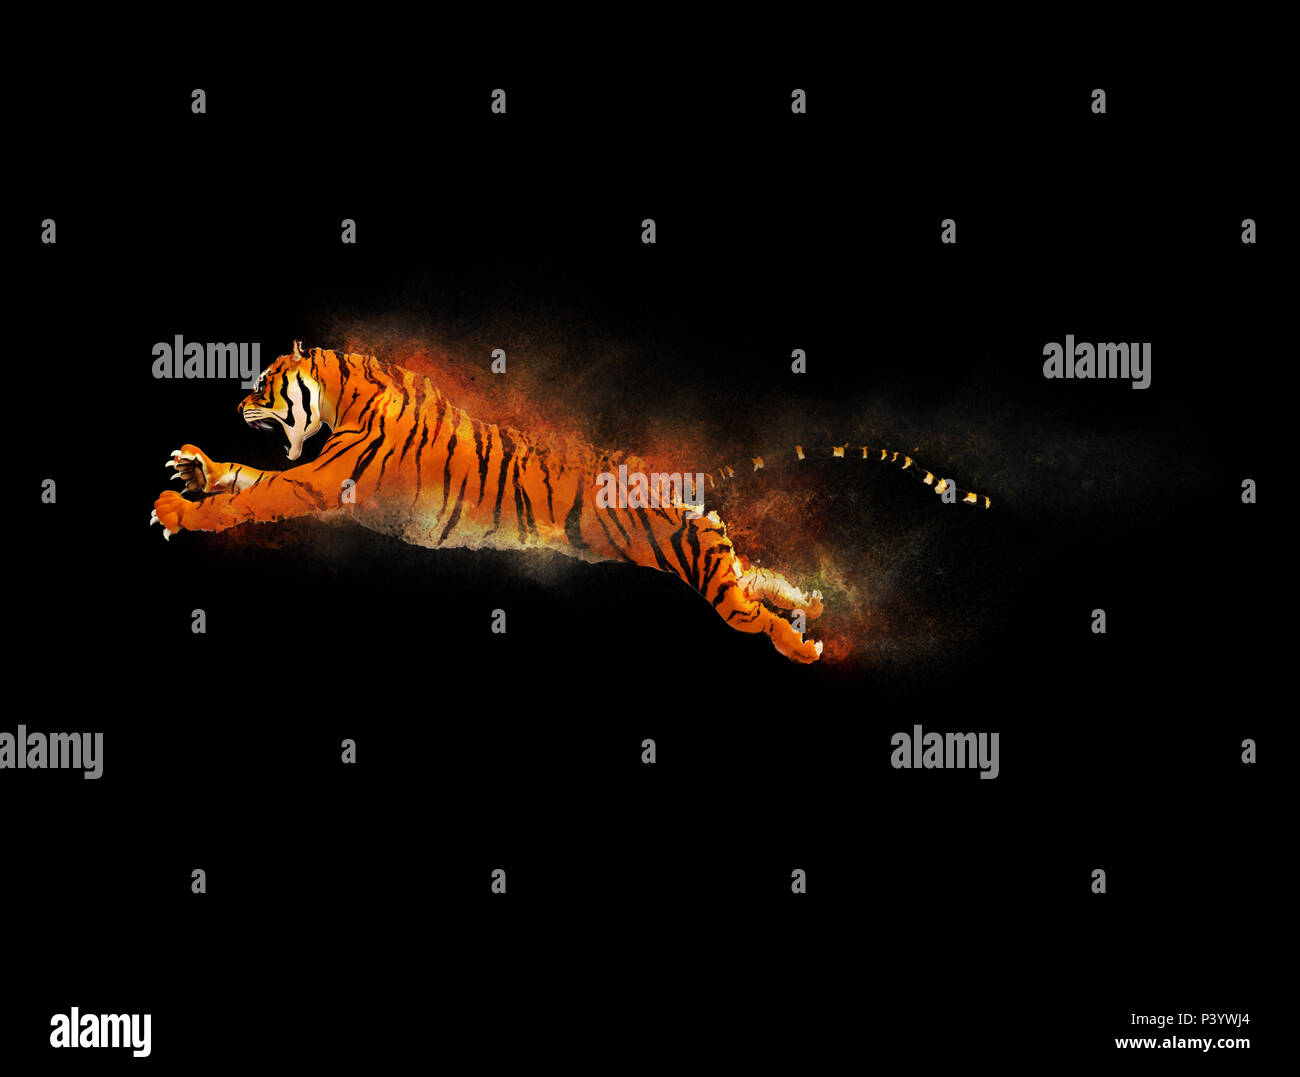 Dust Particle Stock Photos & Dust Particle Stock Images - Alamy